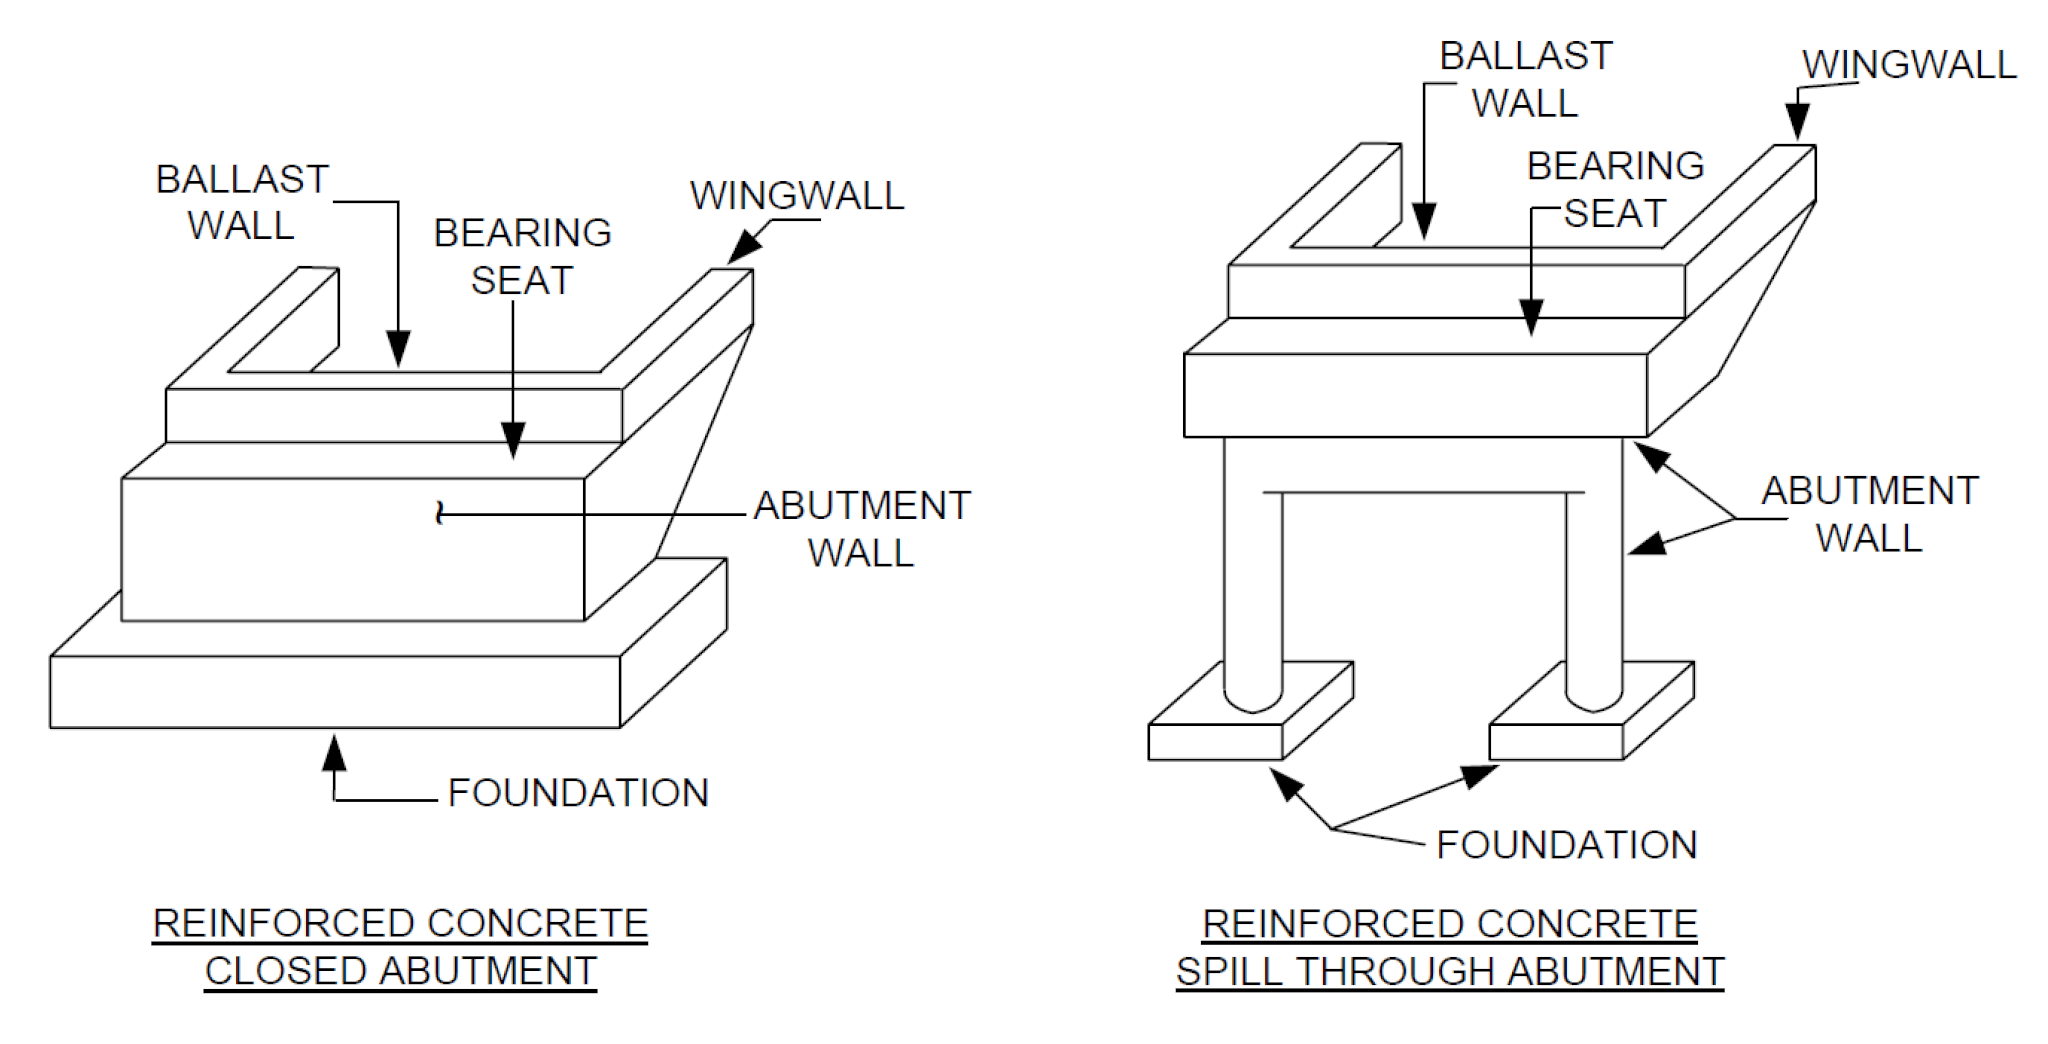 Abutment Walls (Adapted from OSIM 2008